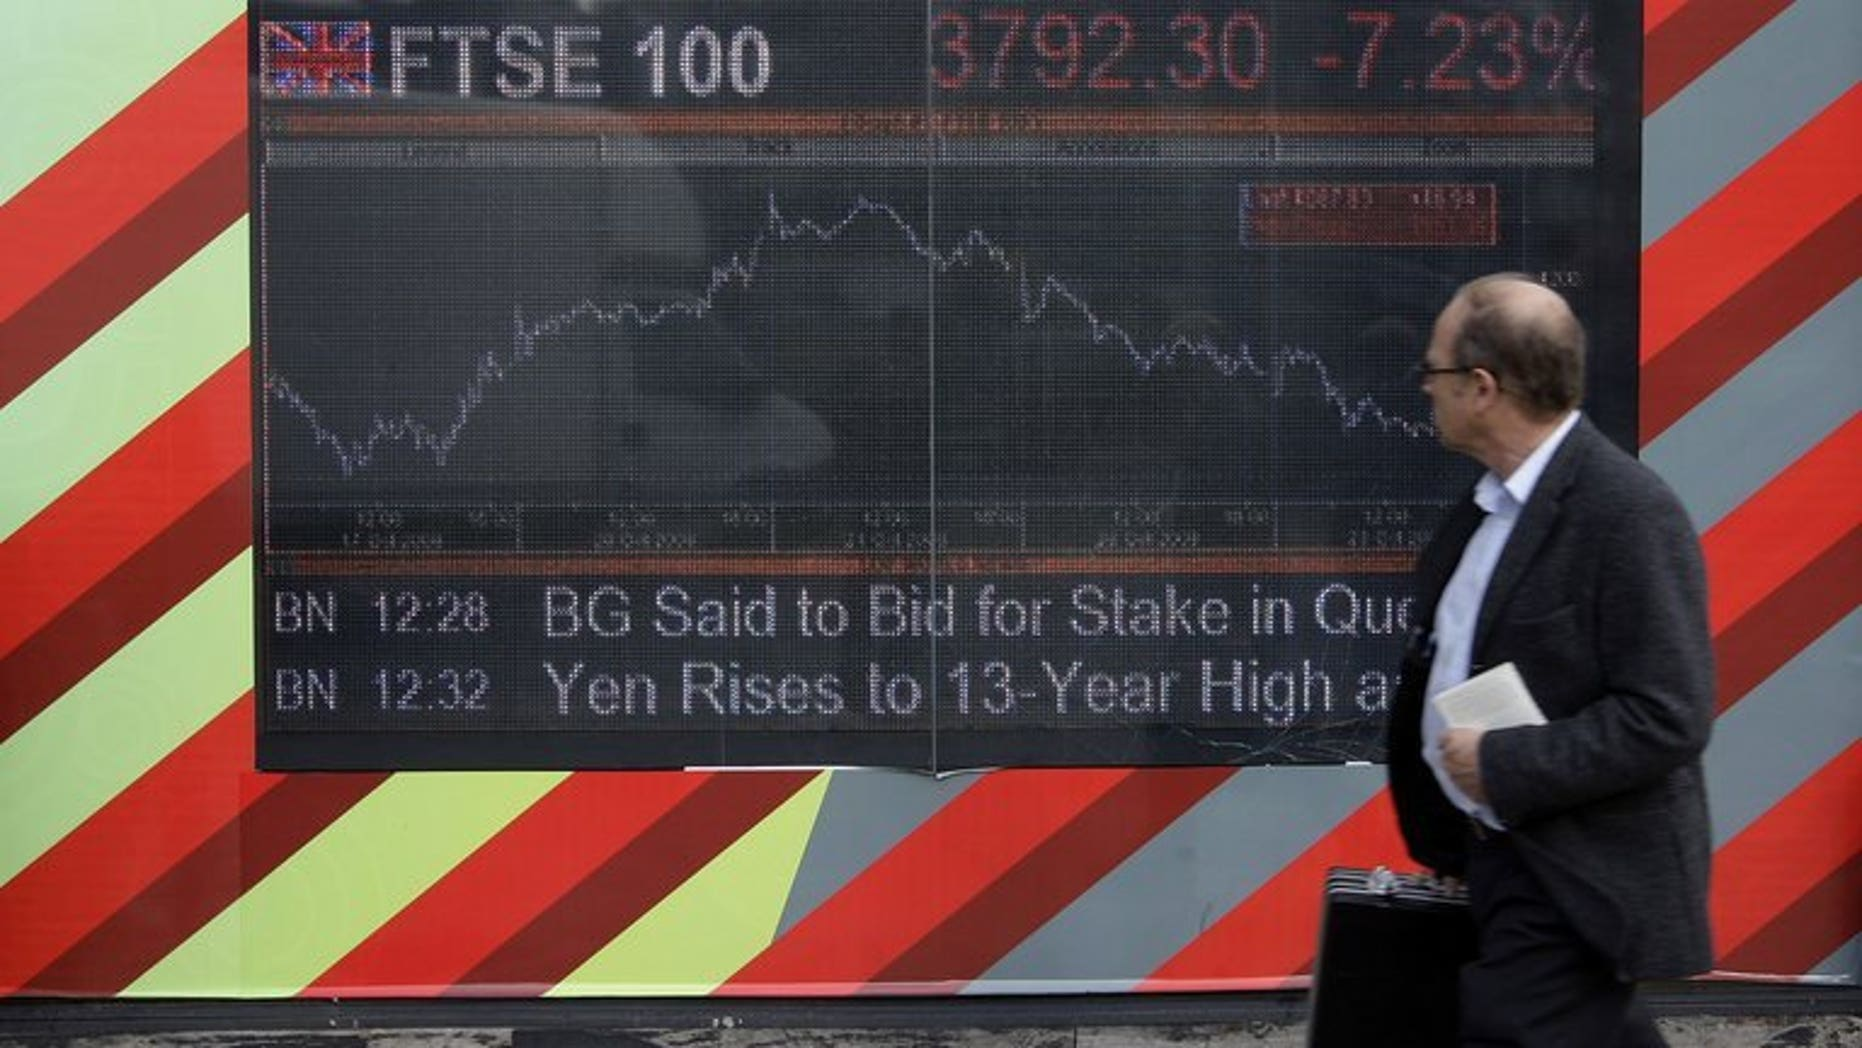 A man walks past an electronic display board showing the FTSE 100 share index in London on October 24, 2008. London stocks closed in the red as speculation grew that the US Federal Reserve will start scaling back its stimulus programme as soon as next month.